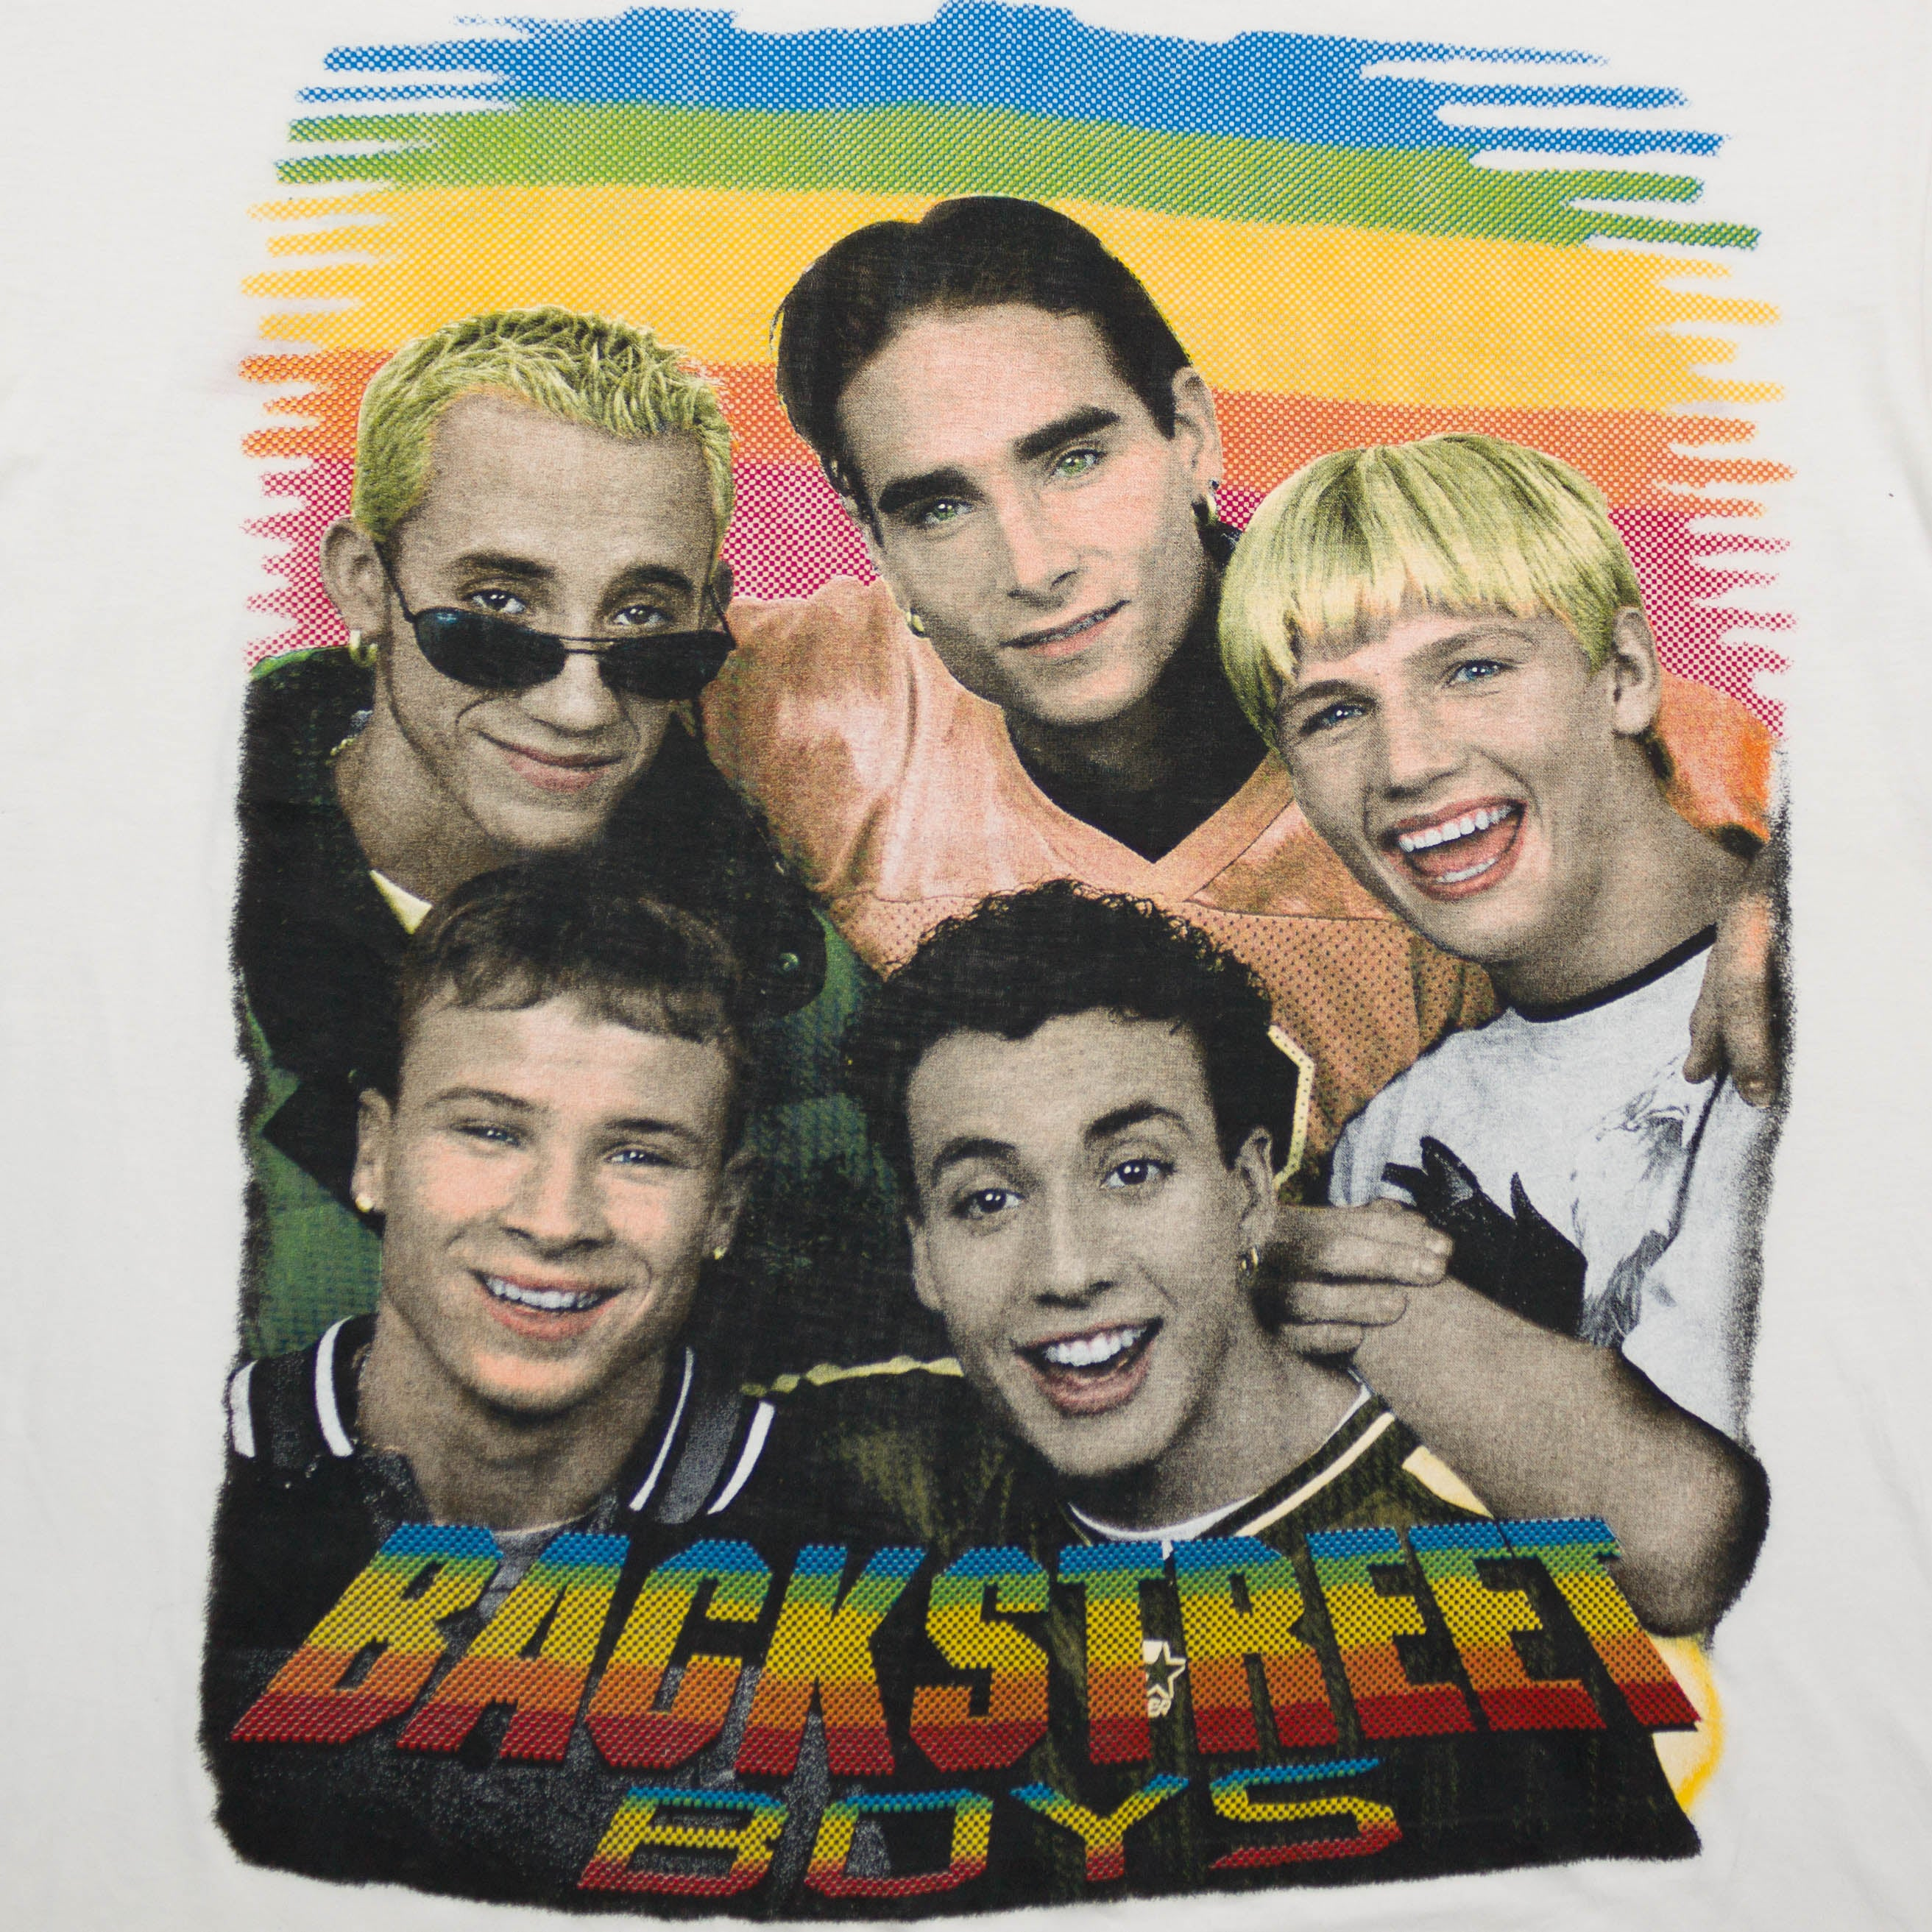 Vintage Backstreet Boys T-shirt